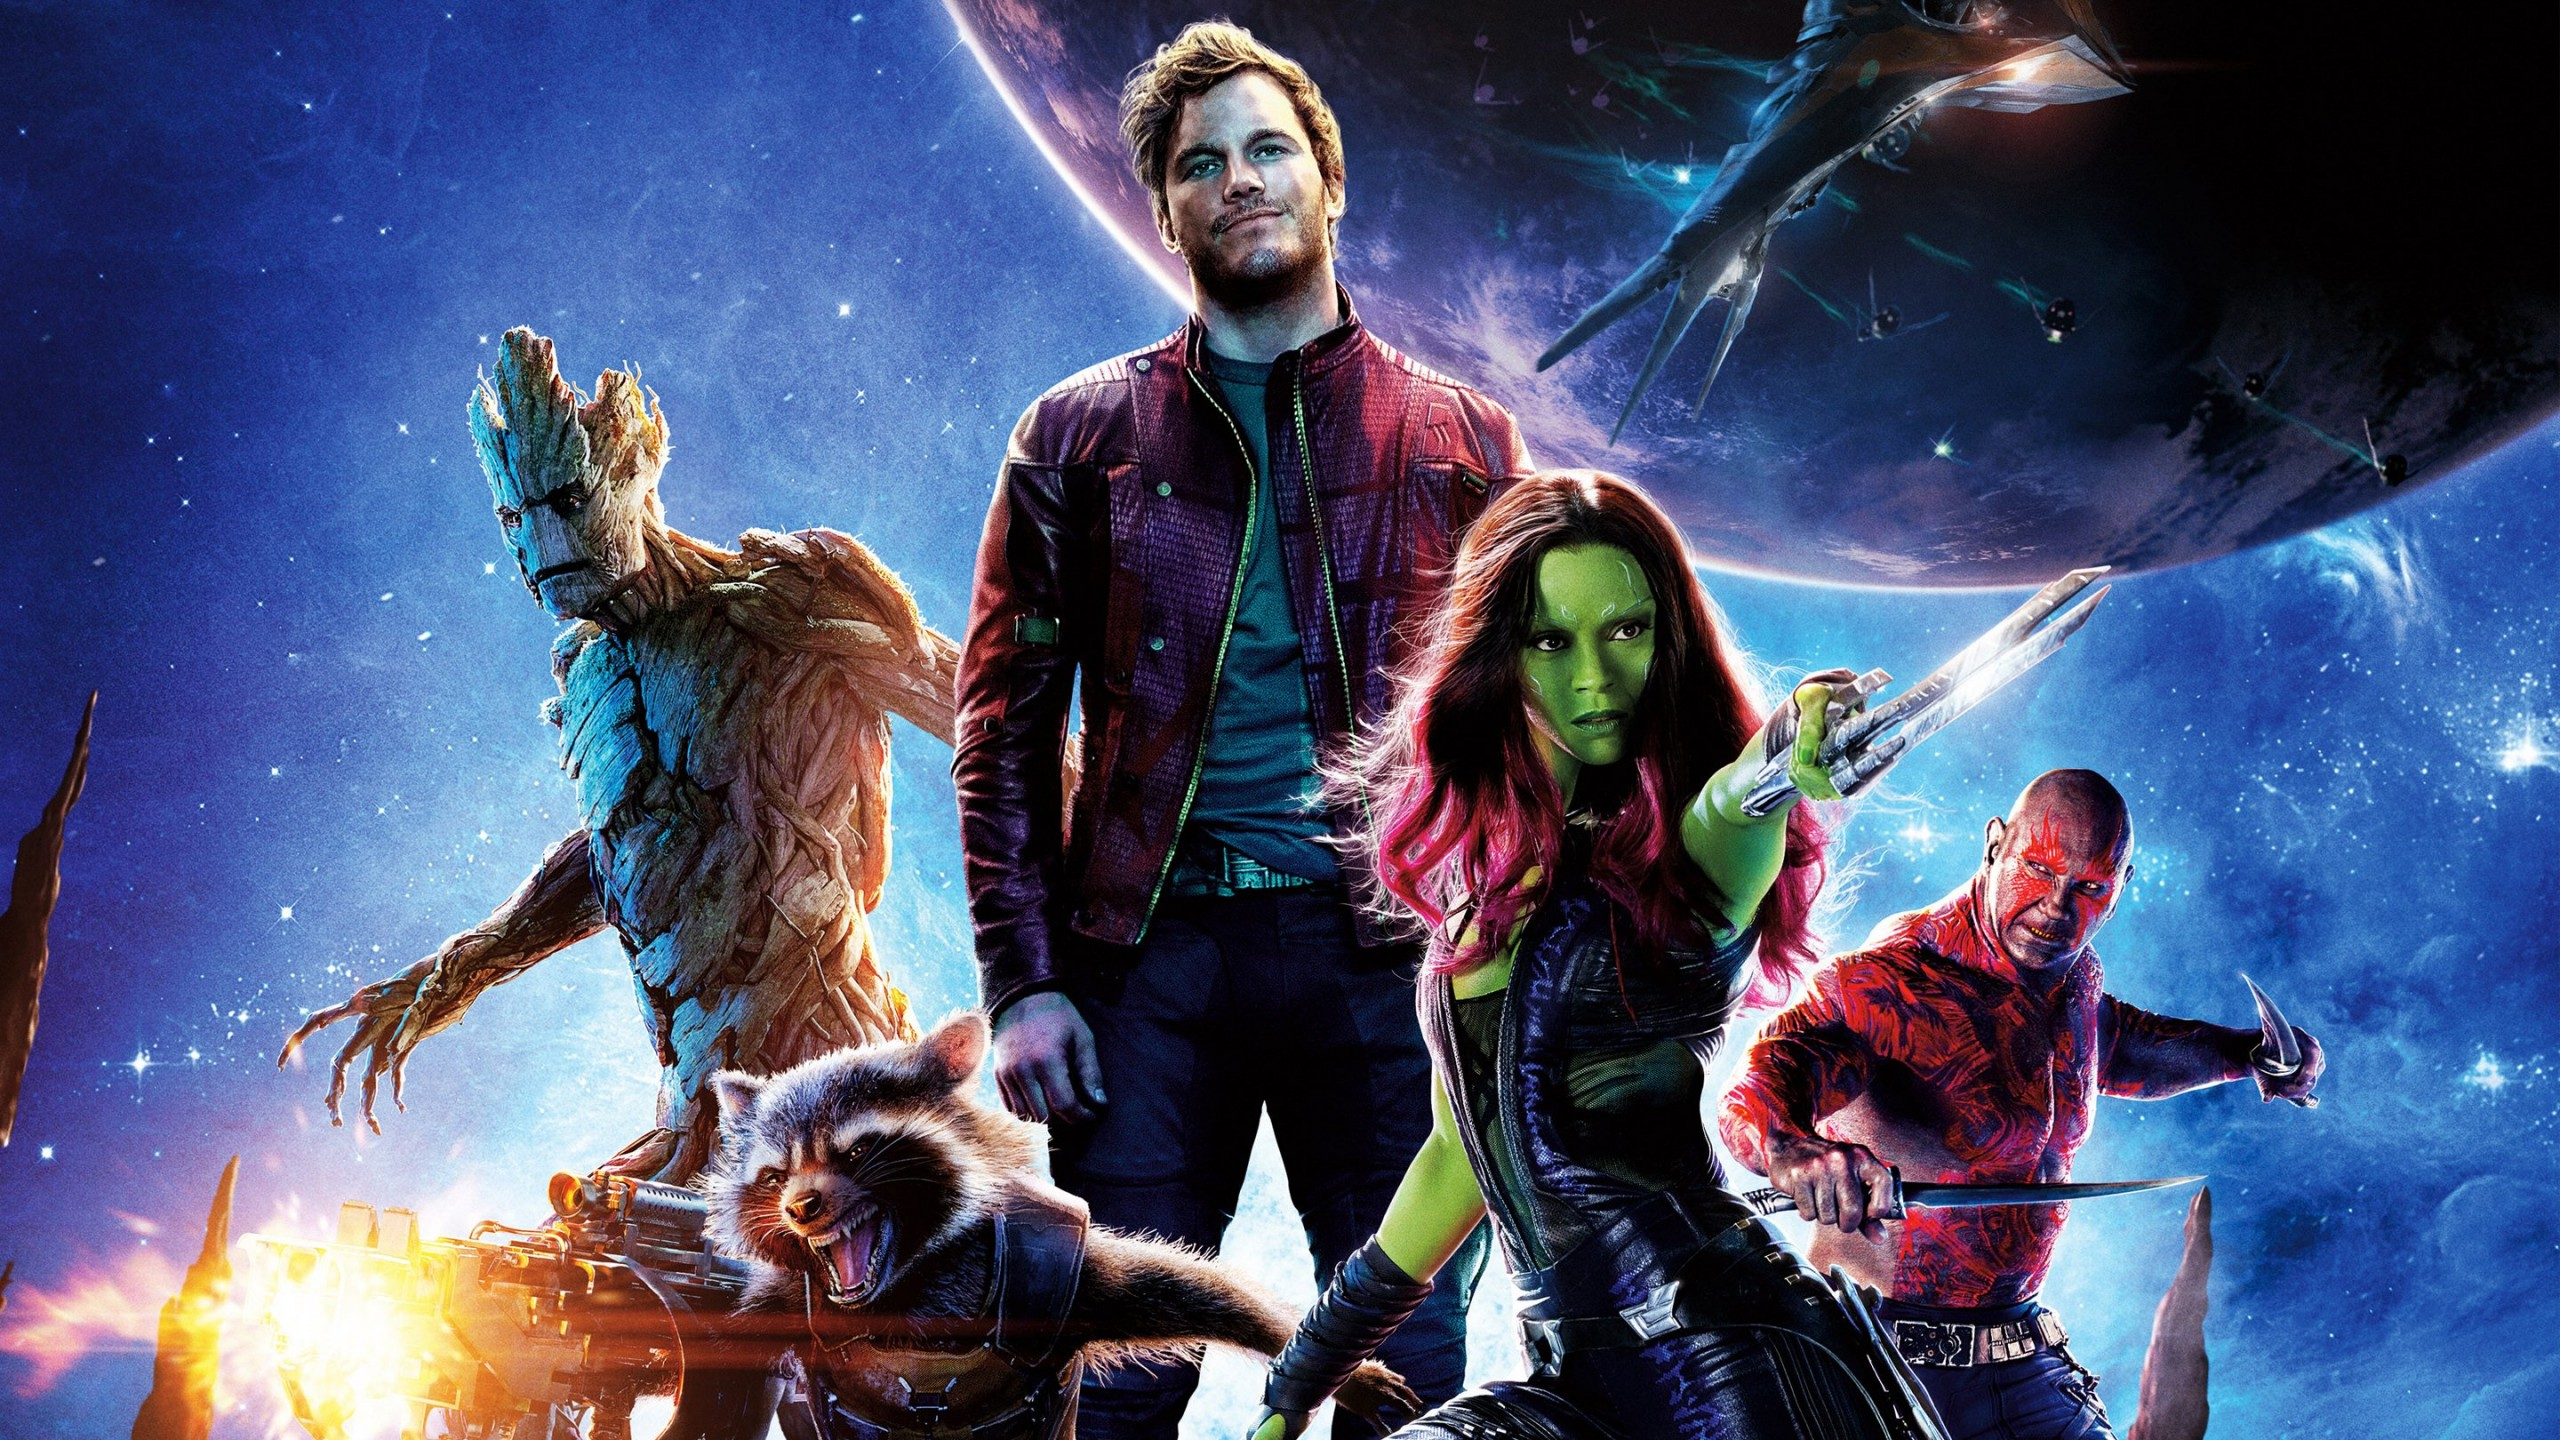 Guardians of the Galaxy Wallpaper for Social Media YouTube Channel Art